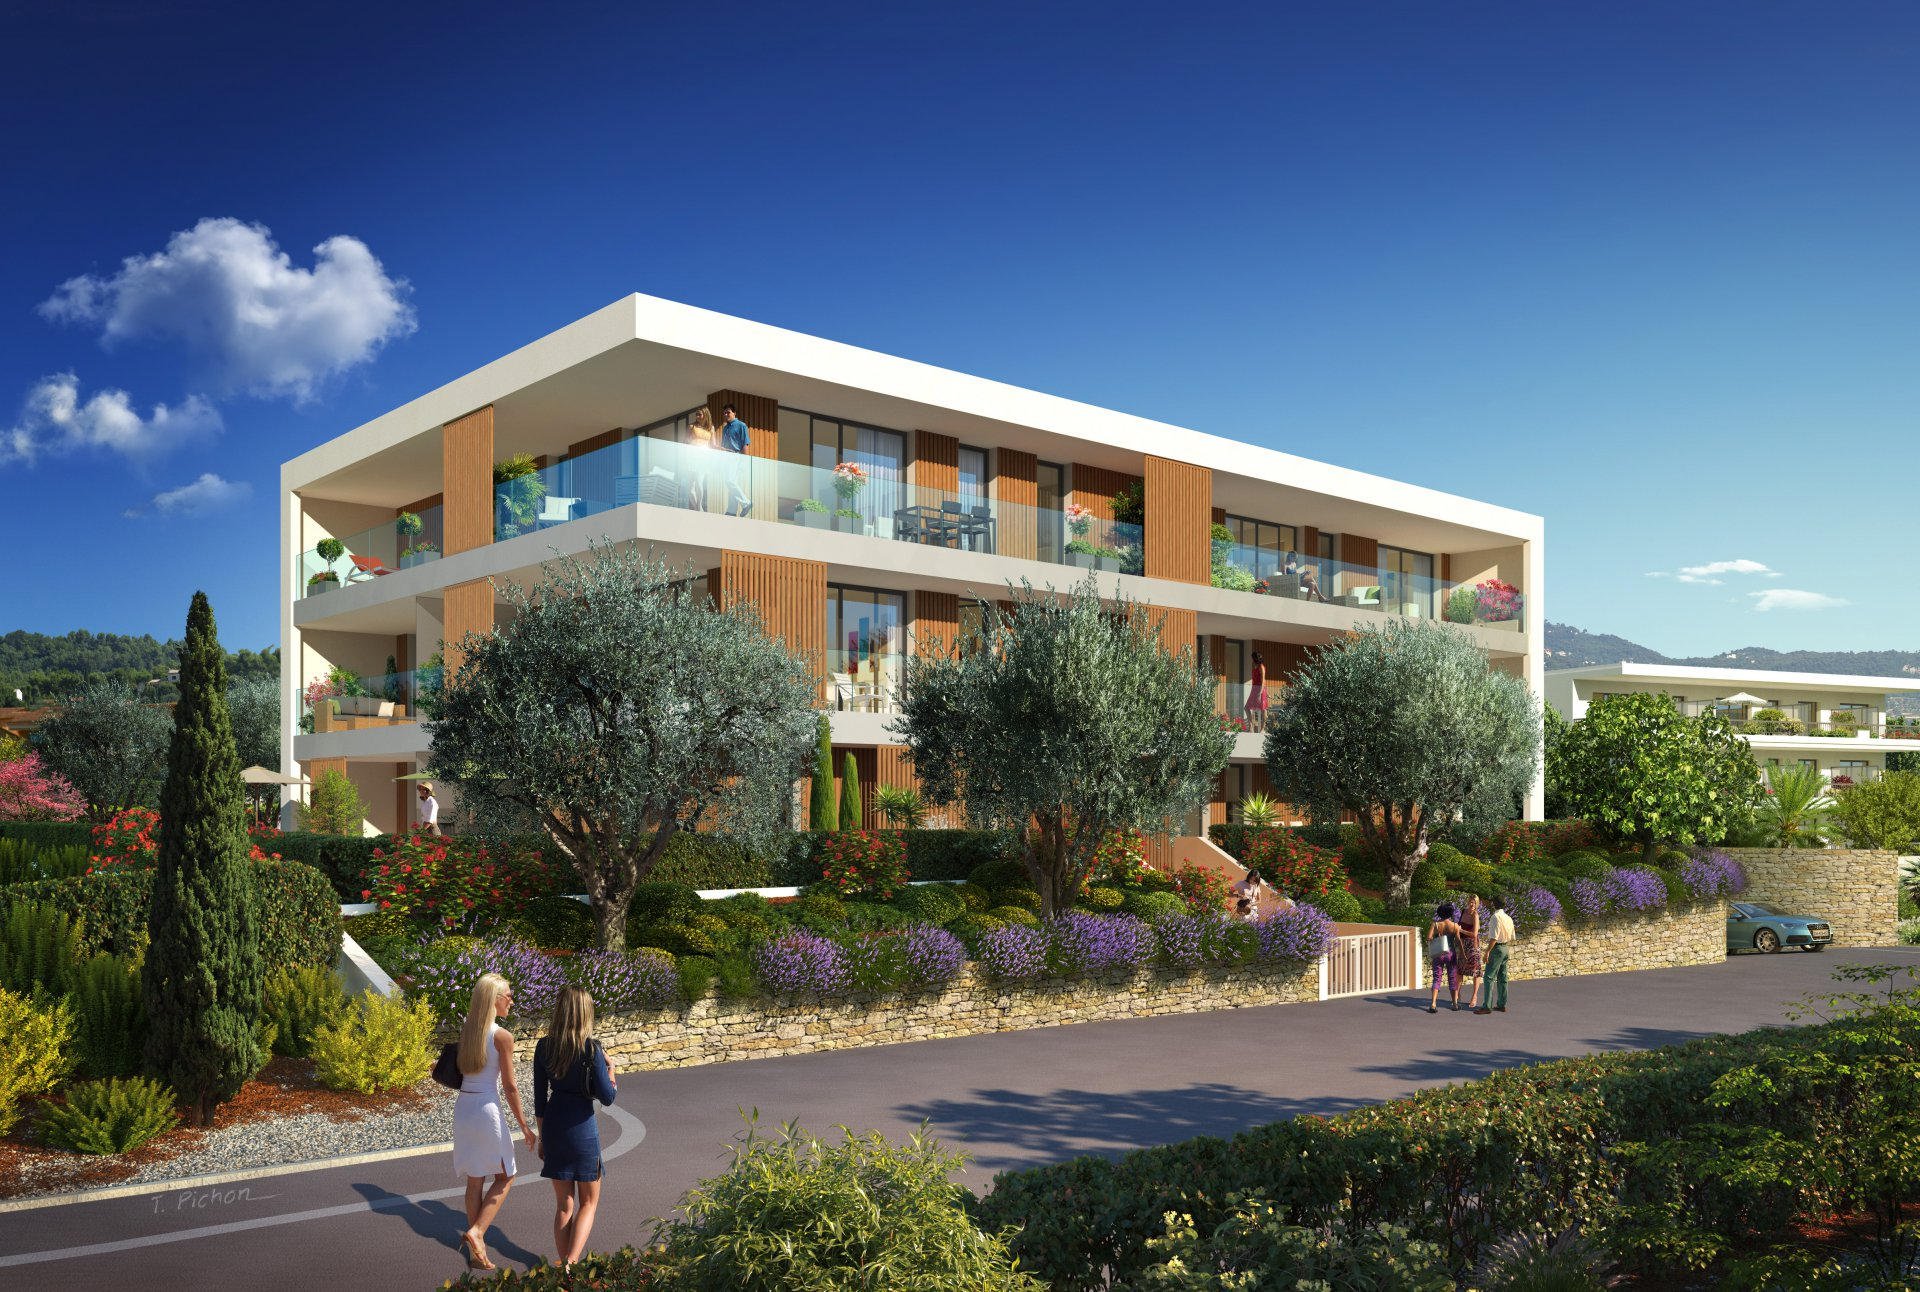 Brand new property development near the beach, shops & restaurants.